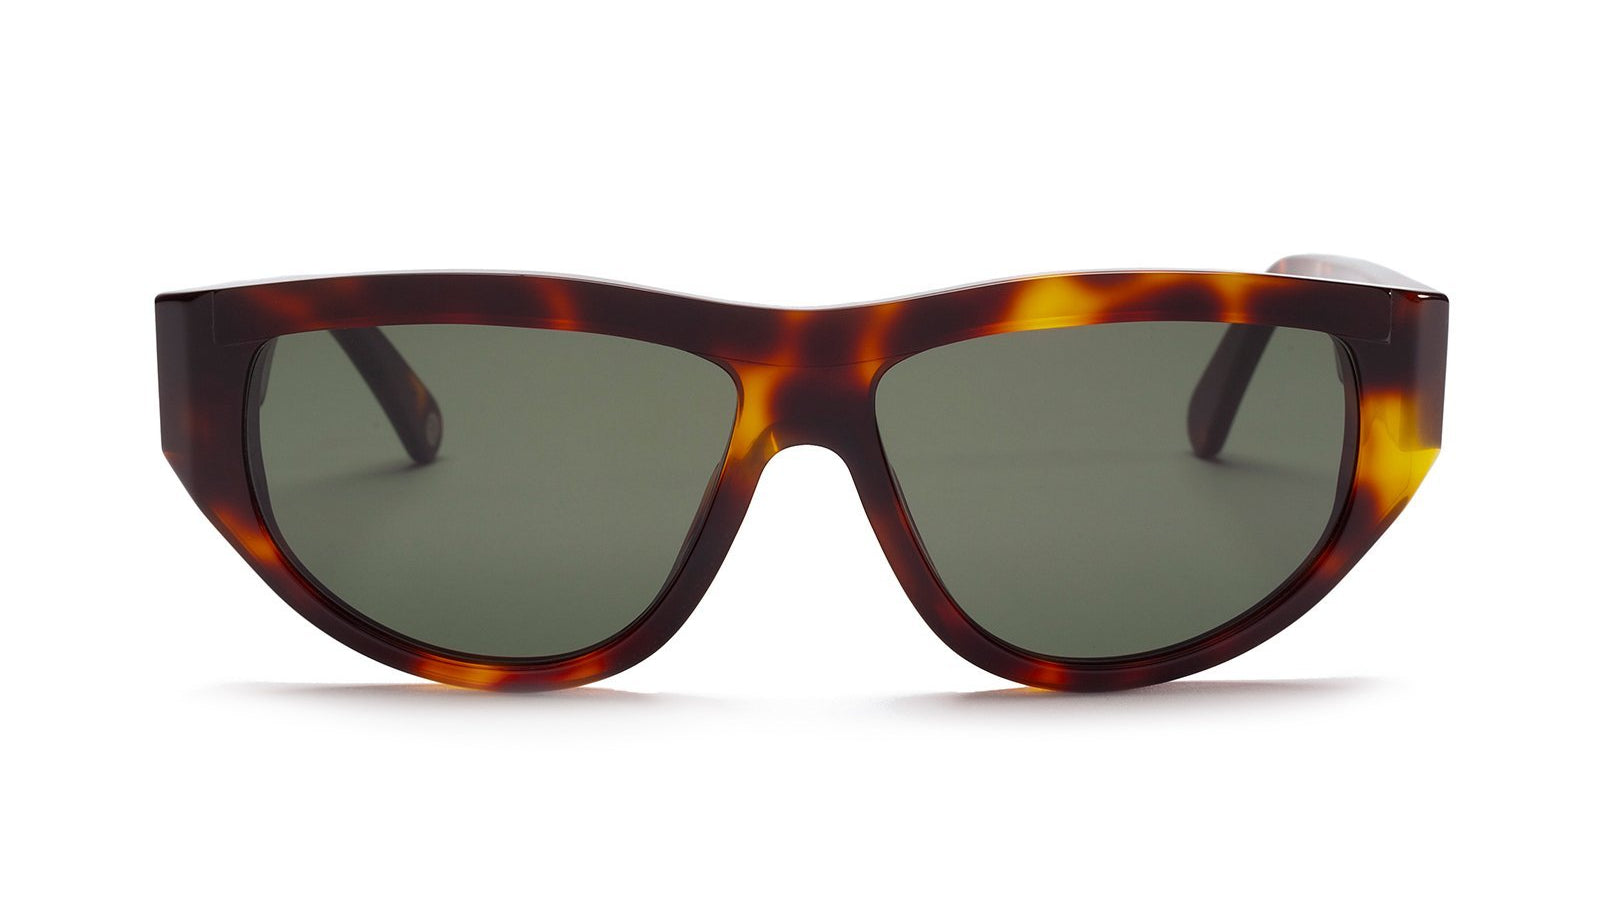 Ahlem Eyewear Bel Air Classic Turtle Sunglasses